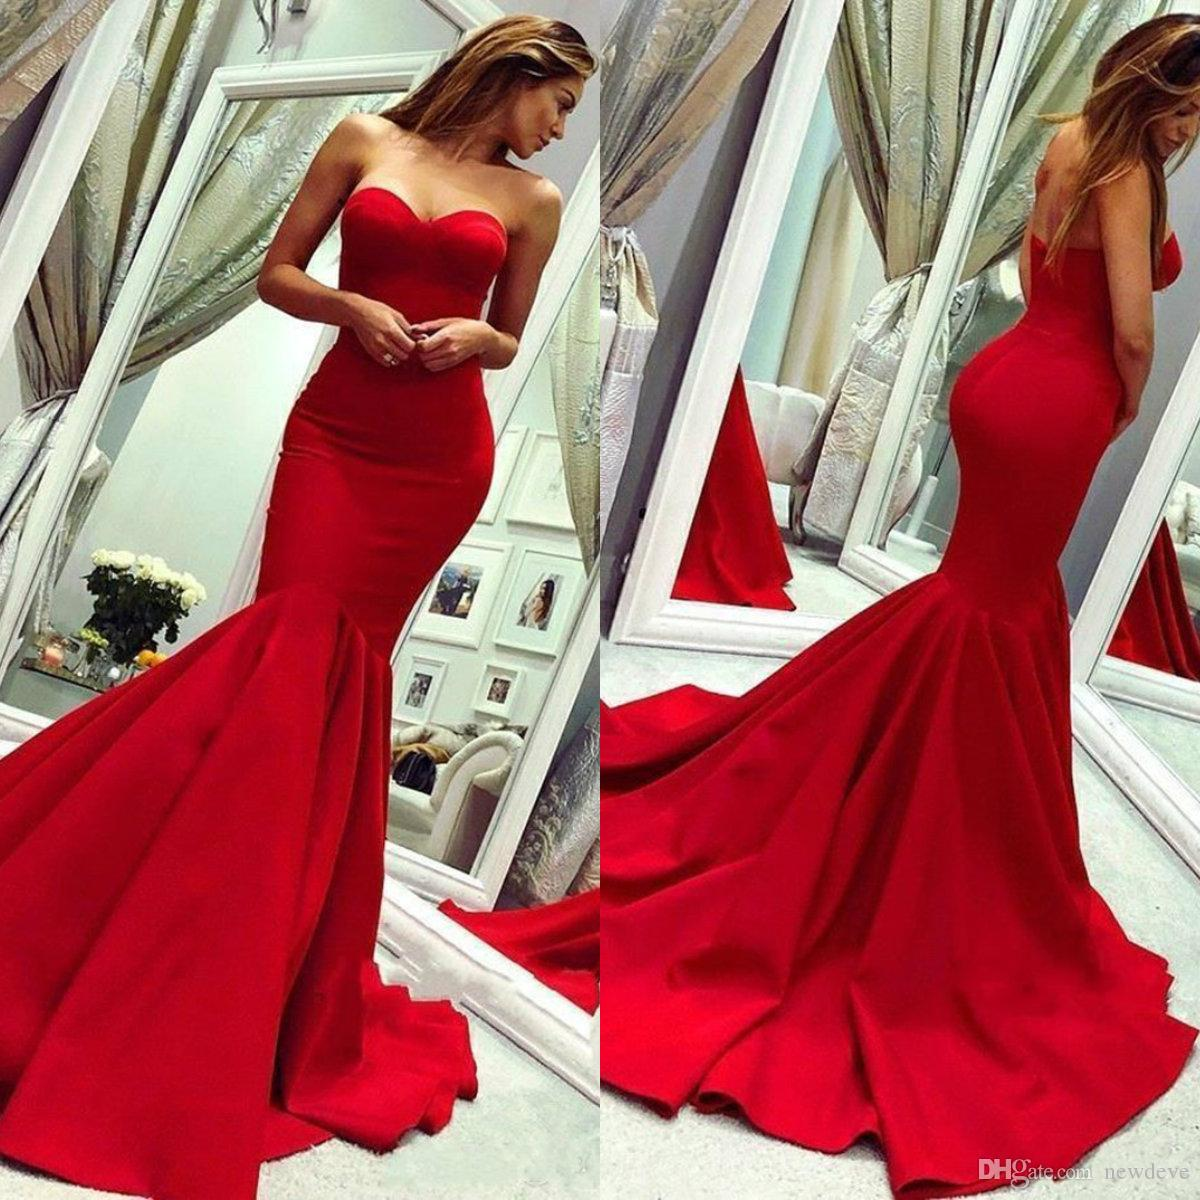 2020 Red Prom Dresses Sweetheart Elegante Mermaid Kleider für besondere Anlässe Sweep Train Backless Ruched Satin Promi Abendgarderobe